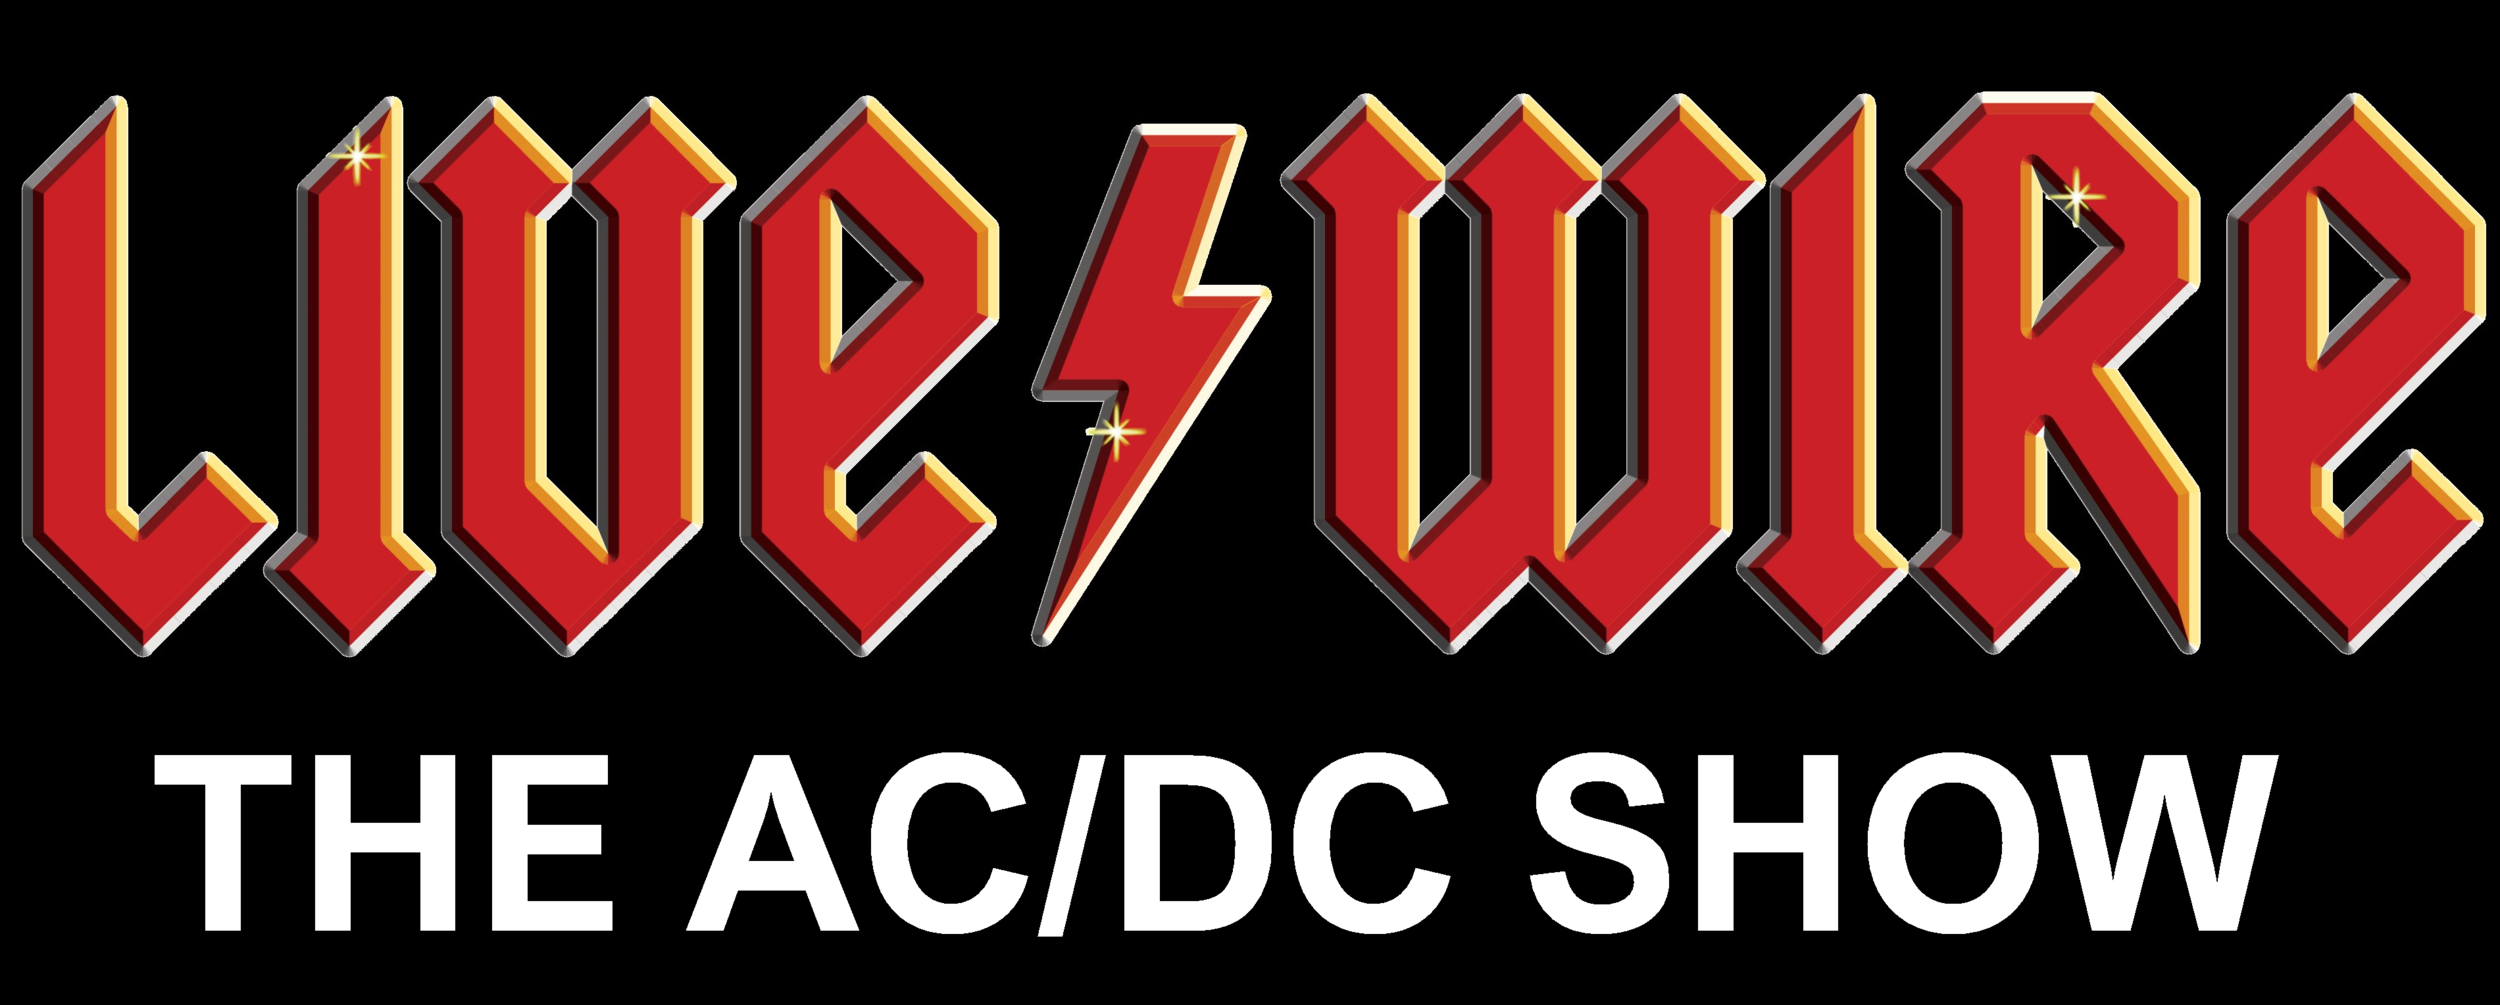 ACDC SHOW LOGO.png